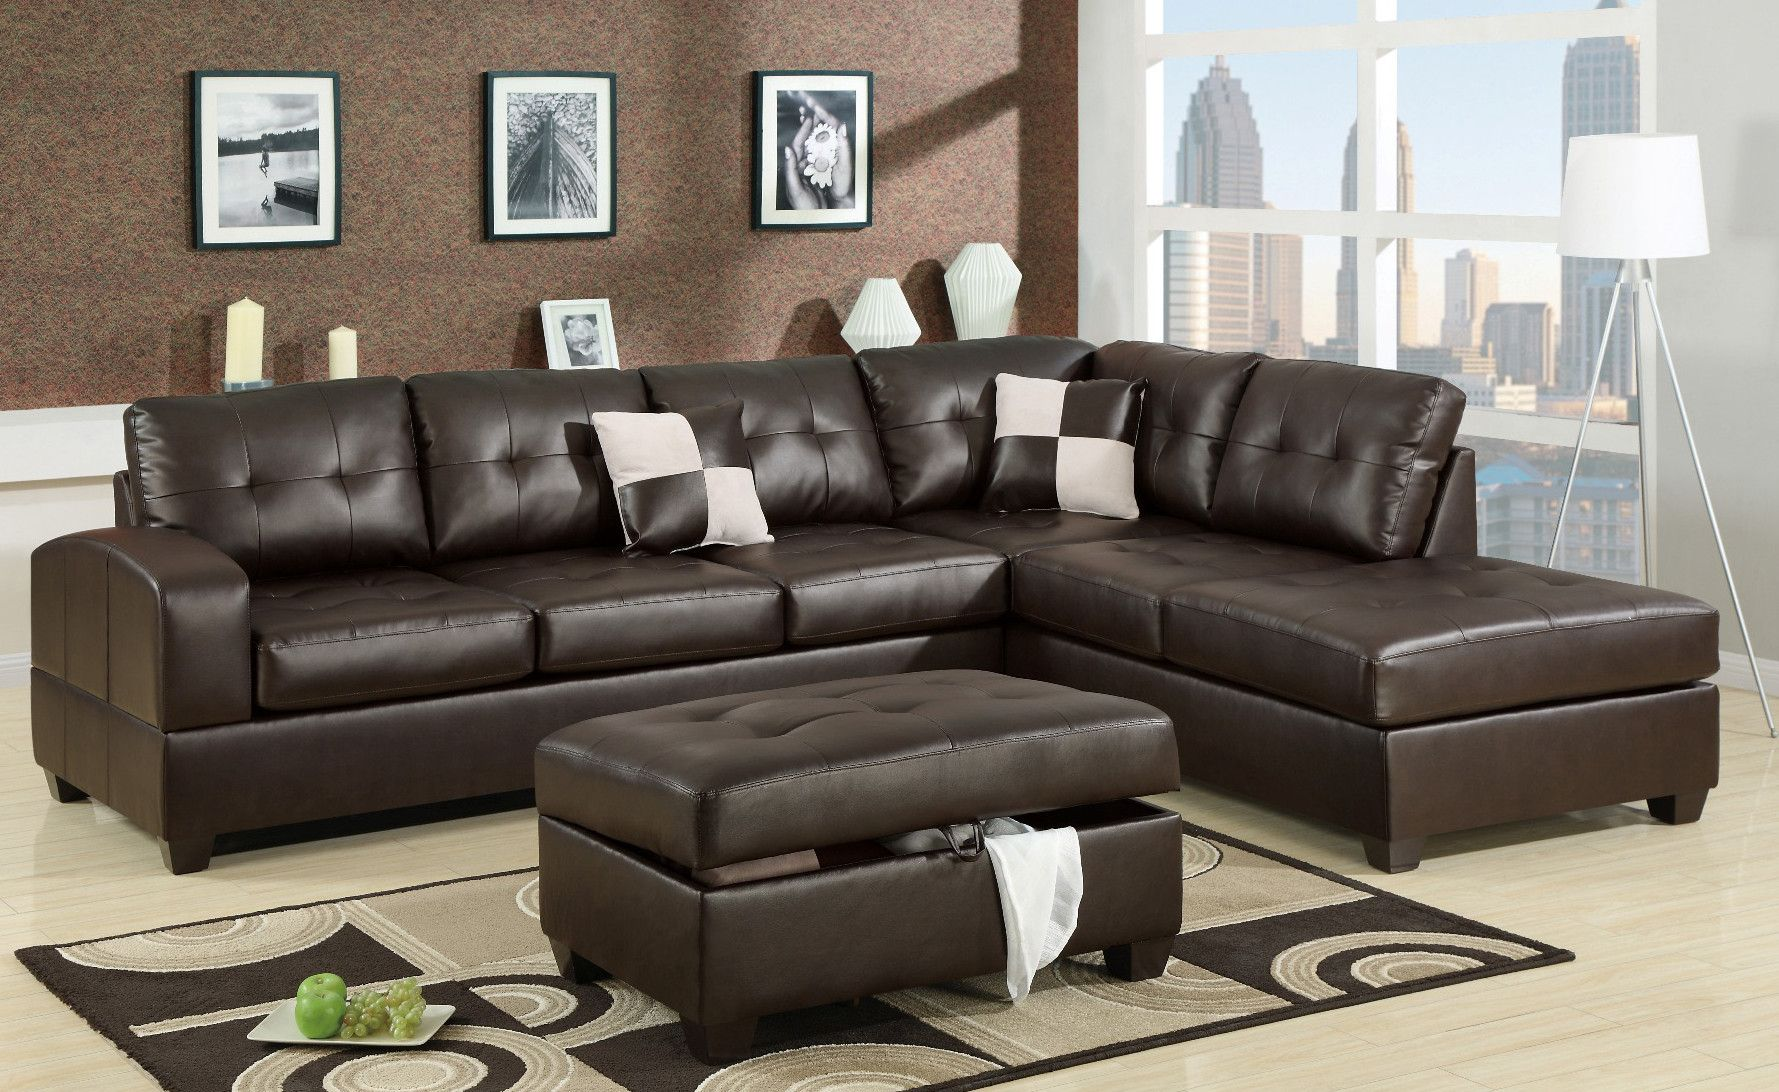 Best 100 Awesome Sectional Sofas Under 1 000 Sectional Sofa 400 x 300